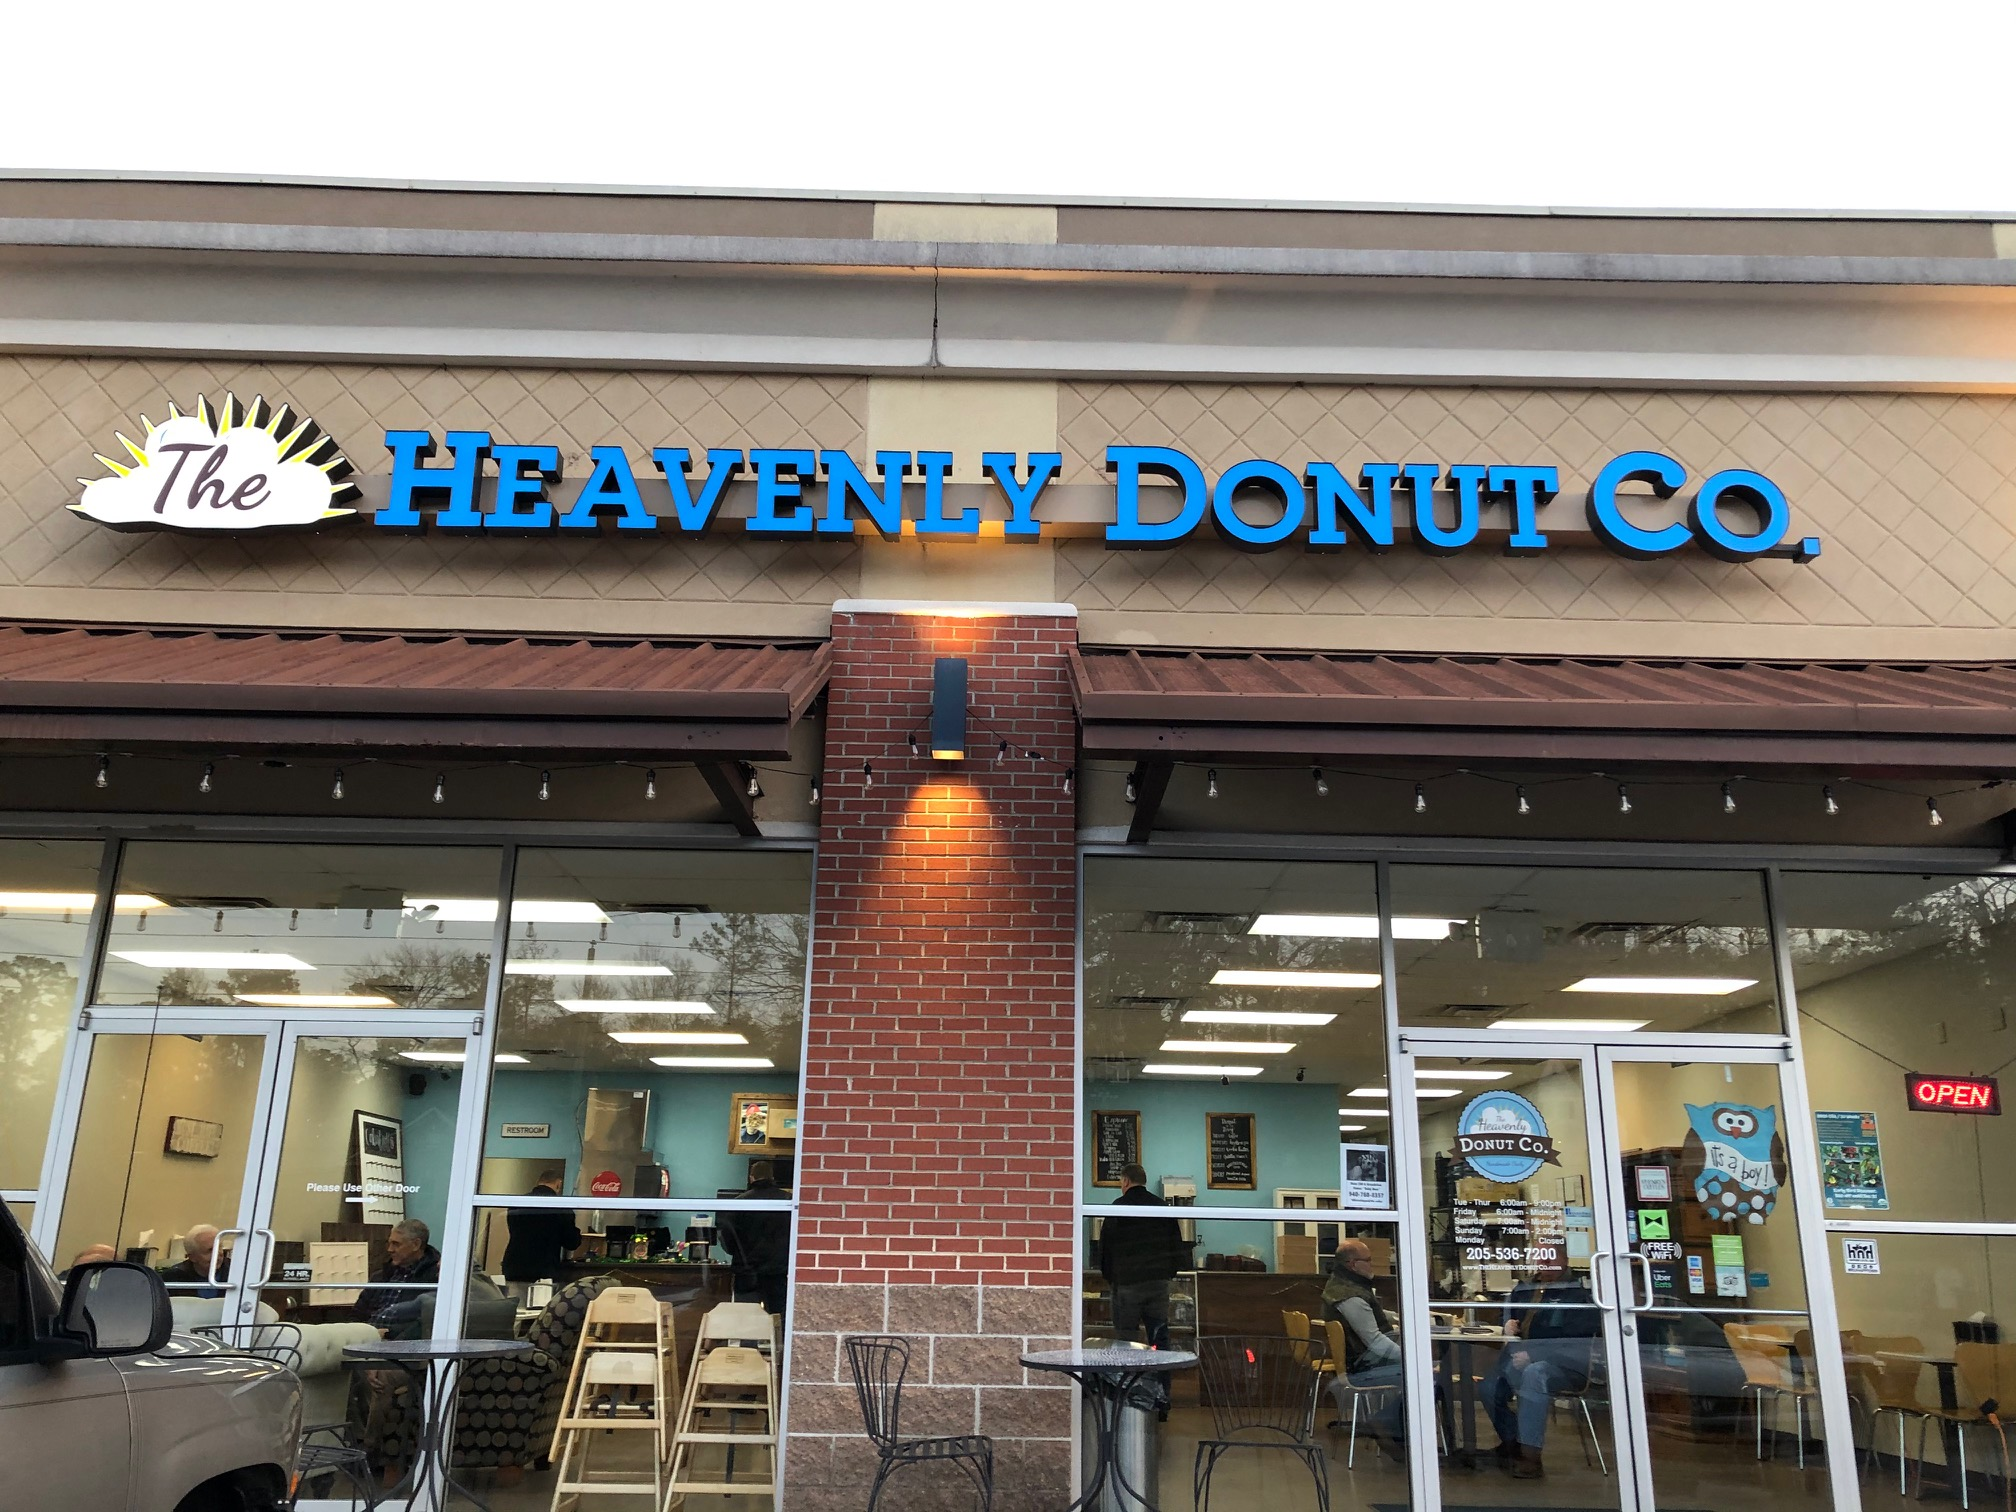 Heavenly Donuts ranked as Top 10 Donut Shop in U.S. by Travel Magazine